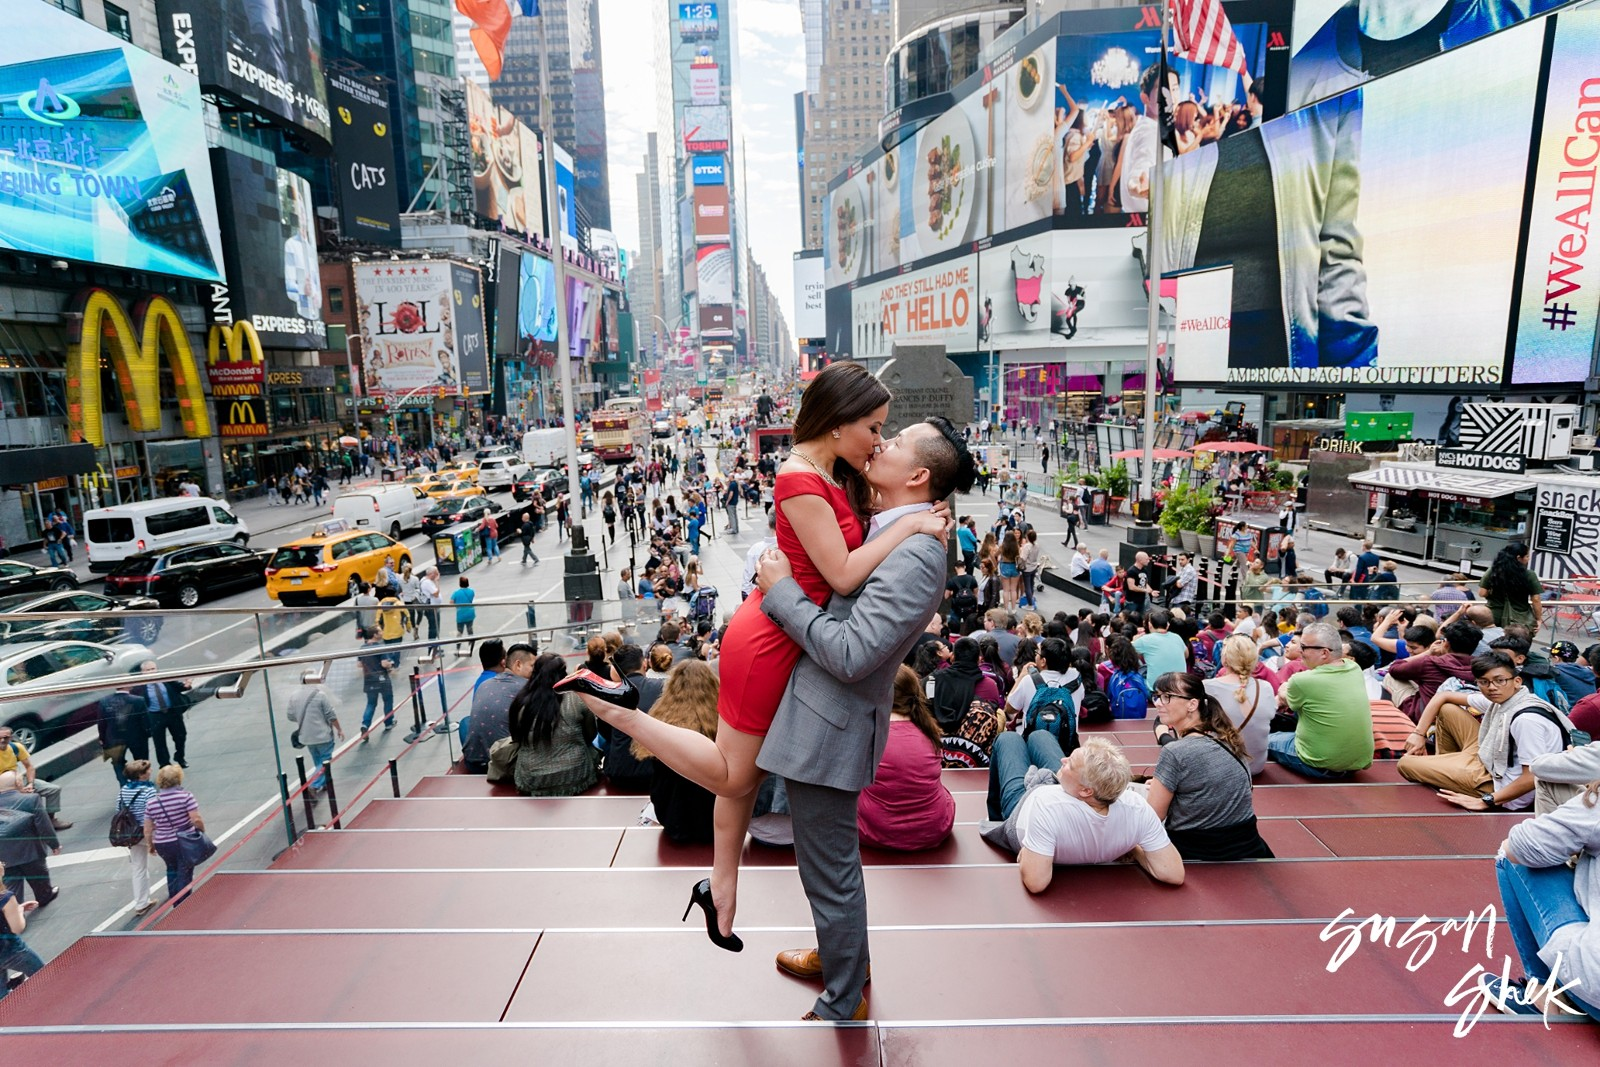 Times Square Engagement Shoot, NYC Engagement Photographer, Engagement Session, Engagement Photography, Engagement Photographer, NYC Wedding Photographer